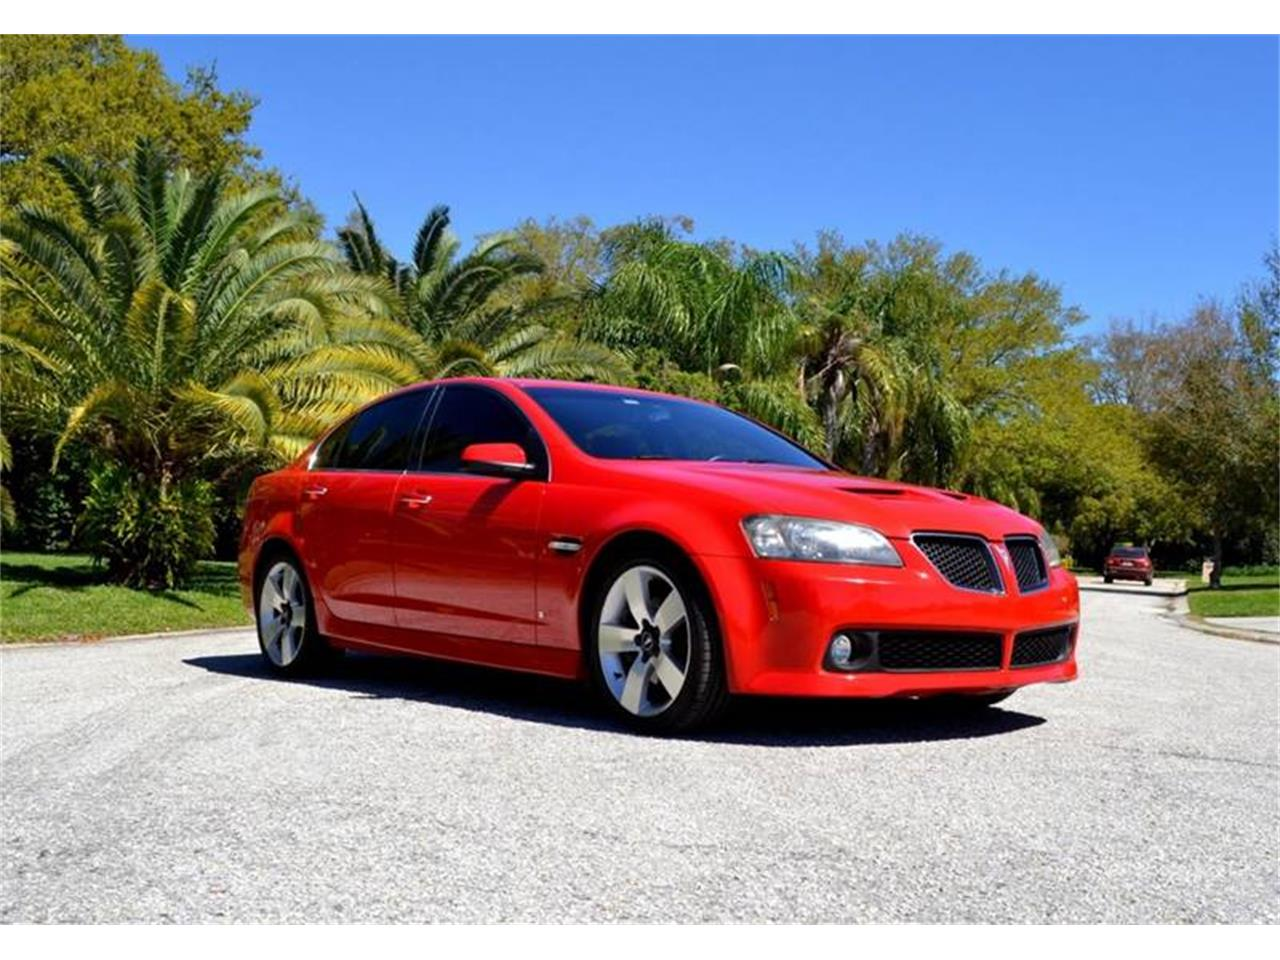 2009 Pontiac G8 for sale in Clearwater, FL – photo 8